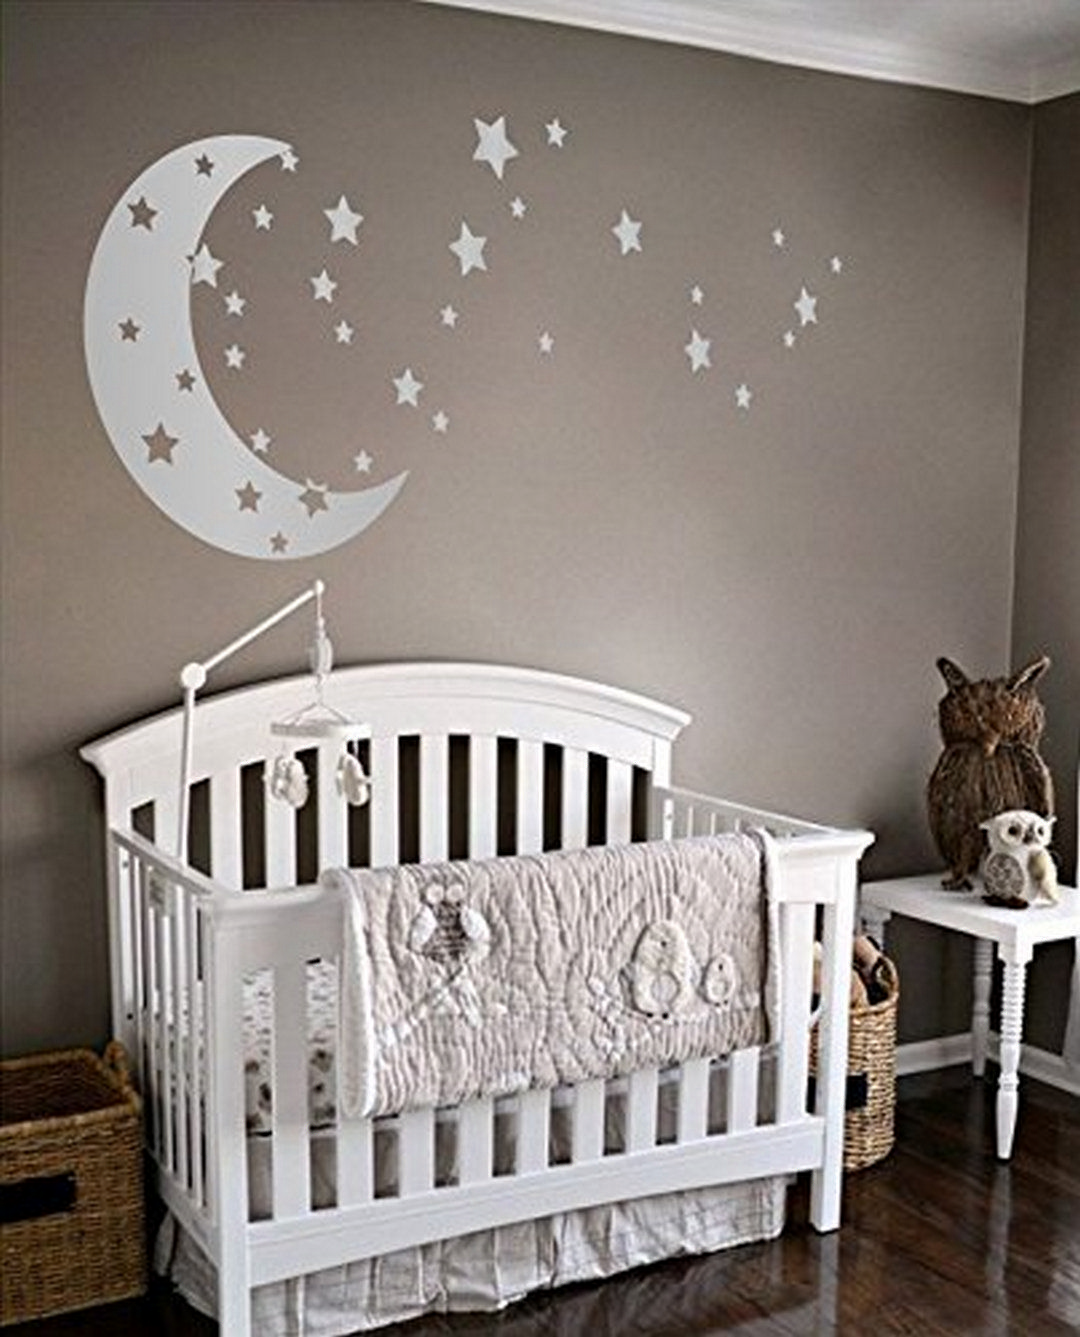 38 Dazzling Moon And Stars Nursery Decoration Ideas Https Www Futuristarchitecture